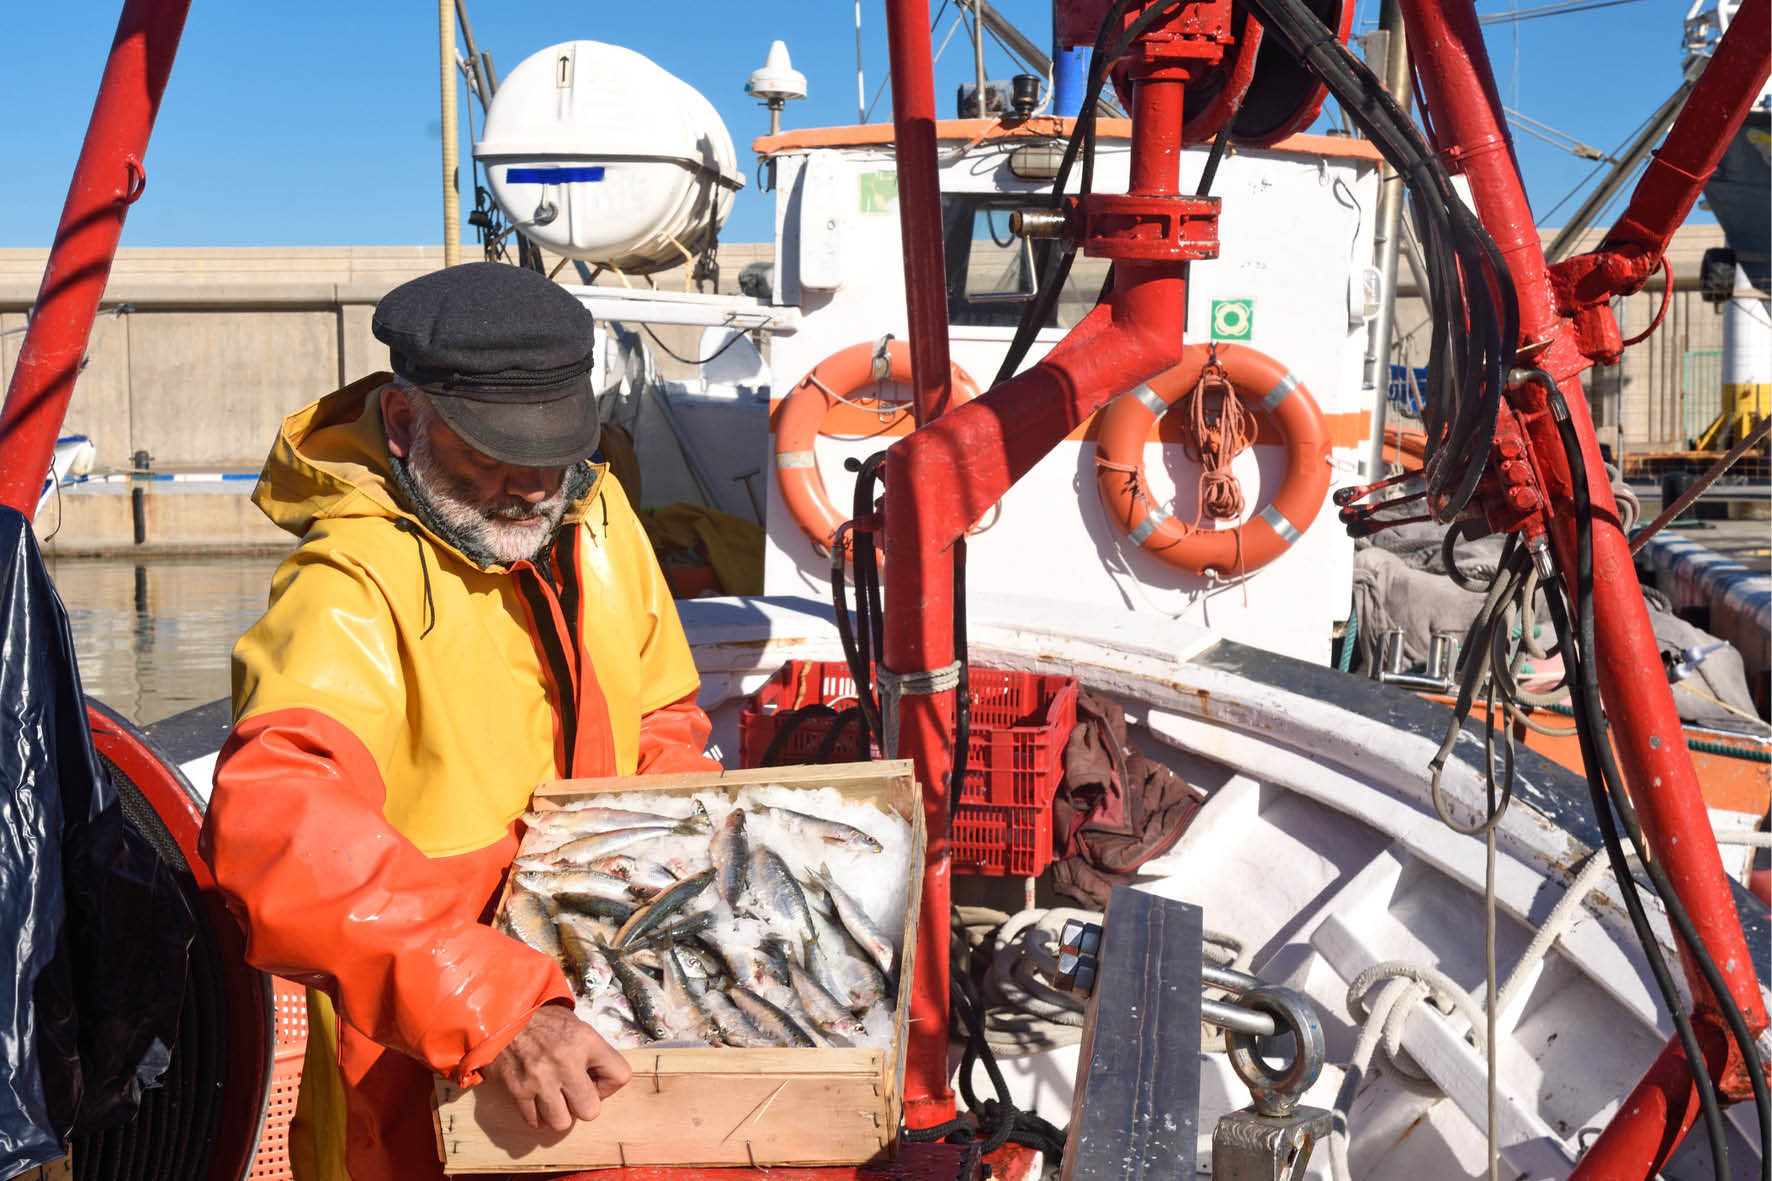 Day Boats from North Shields - Rely on the experts… our fishing fleet at North Shields, like all fishermen, know their stuff, the best fishing grounds and the best sustainable fishing methods to ensure stocks are maintained for the future.